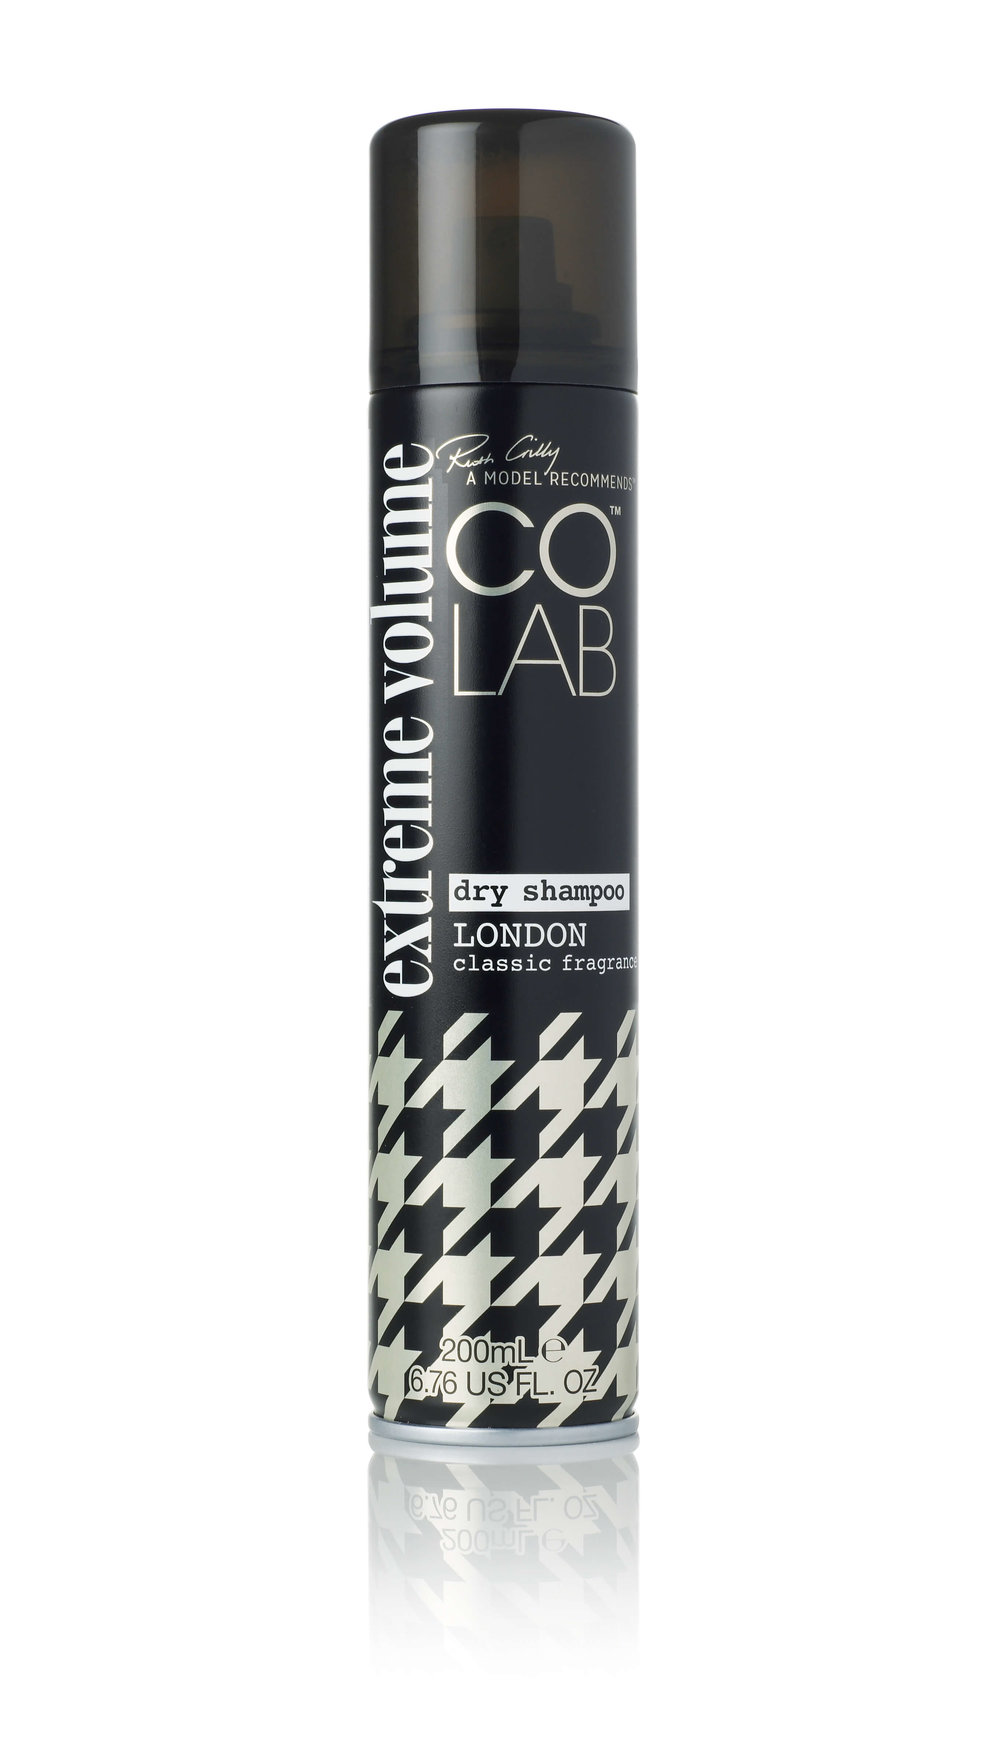 COLAB_London Extreme 200ml_RGB (1).jpg